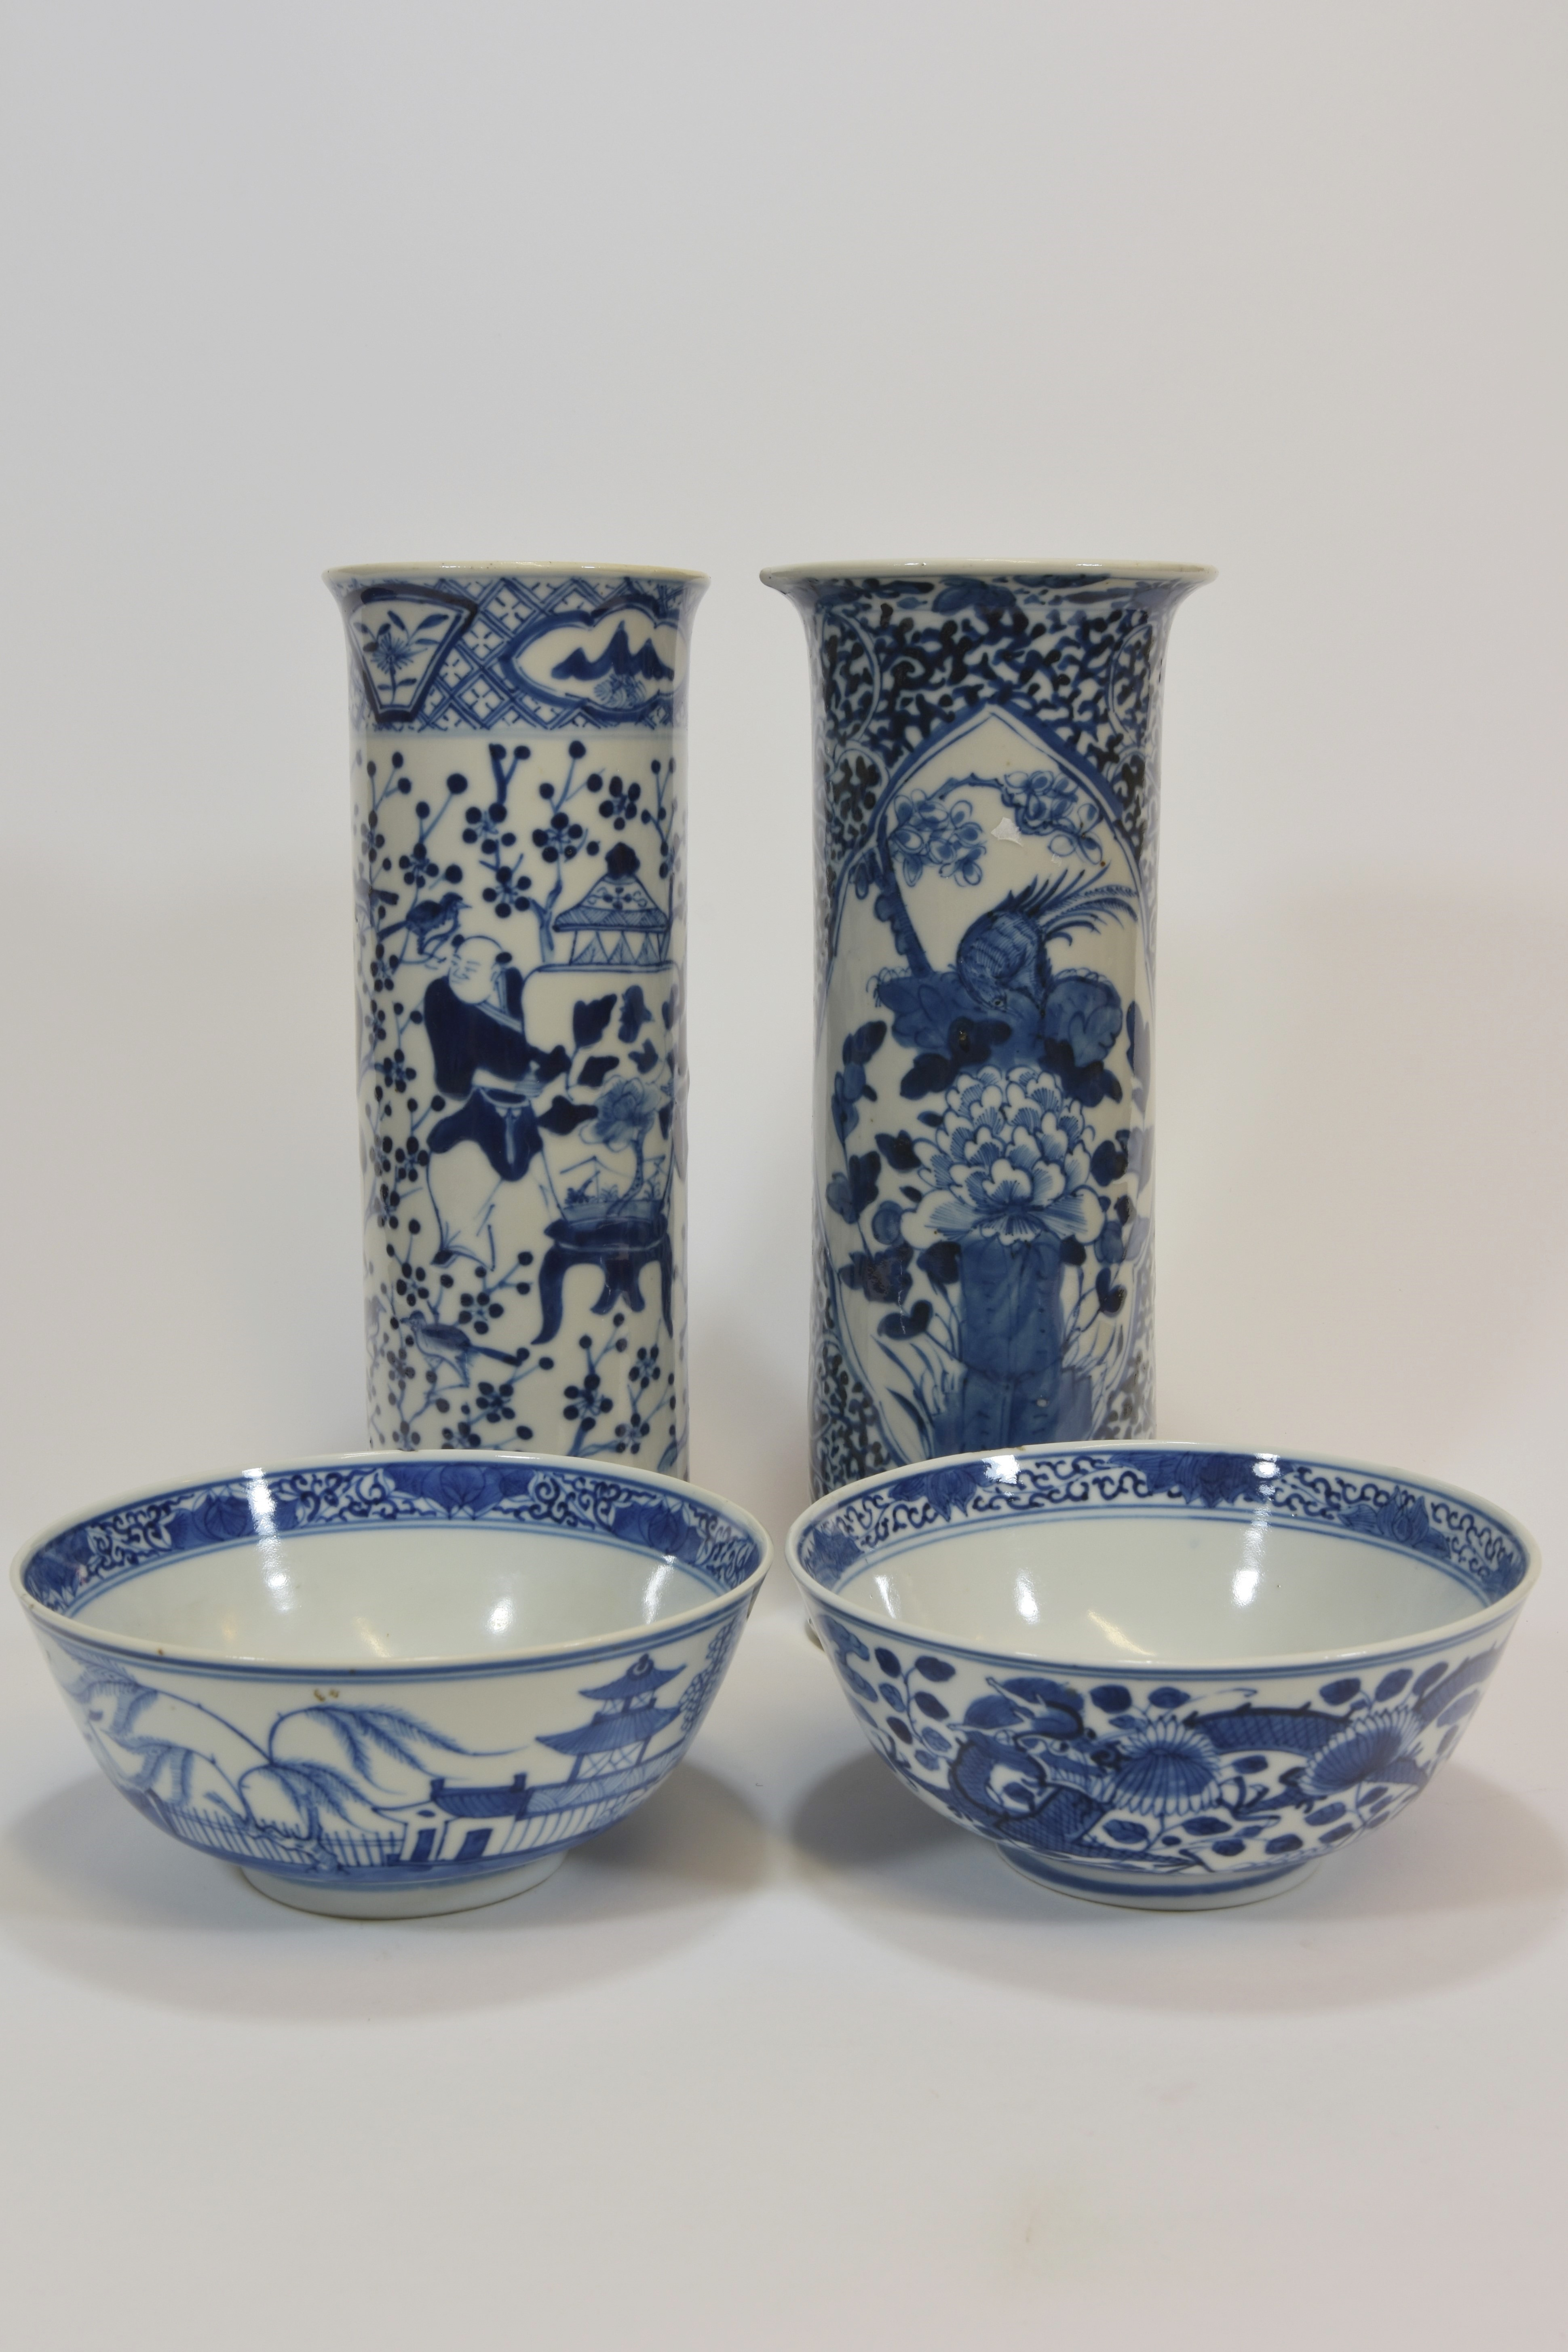 Lot 13 - Two 19th century vases with figures and birds together with two bowls (4)清 十九世紀 青花尊及青花碗共四件